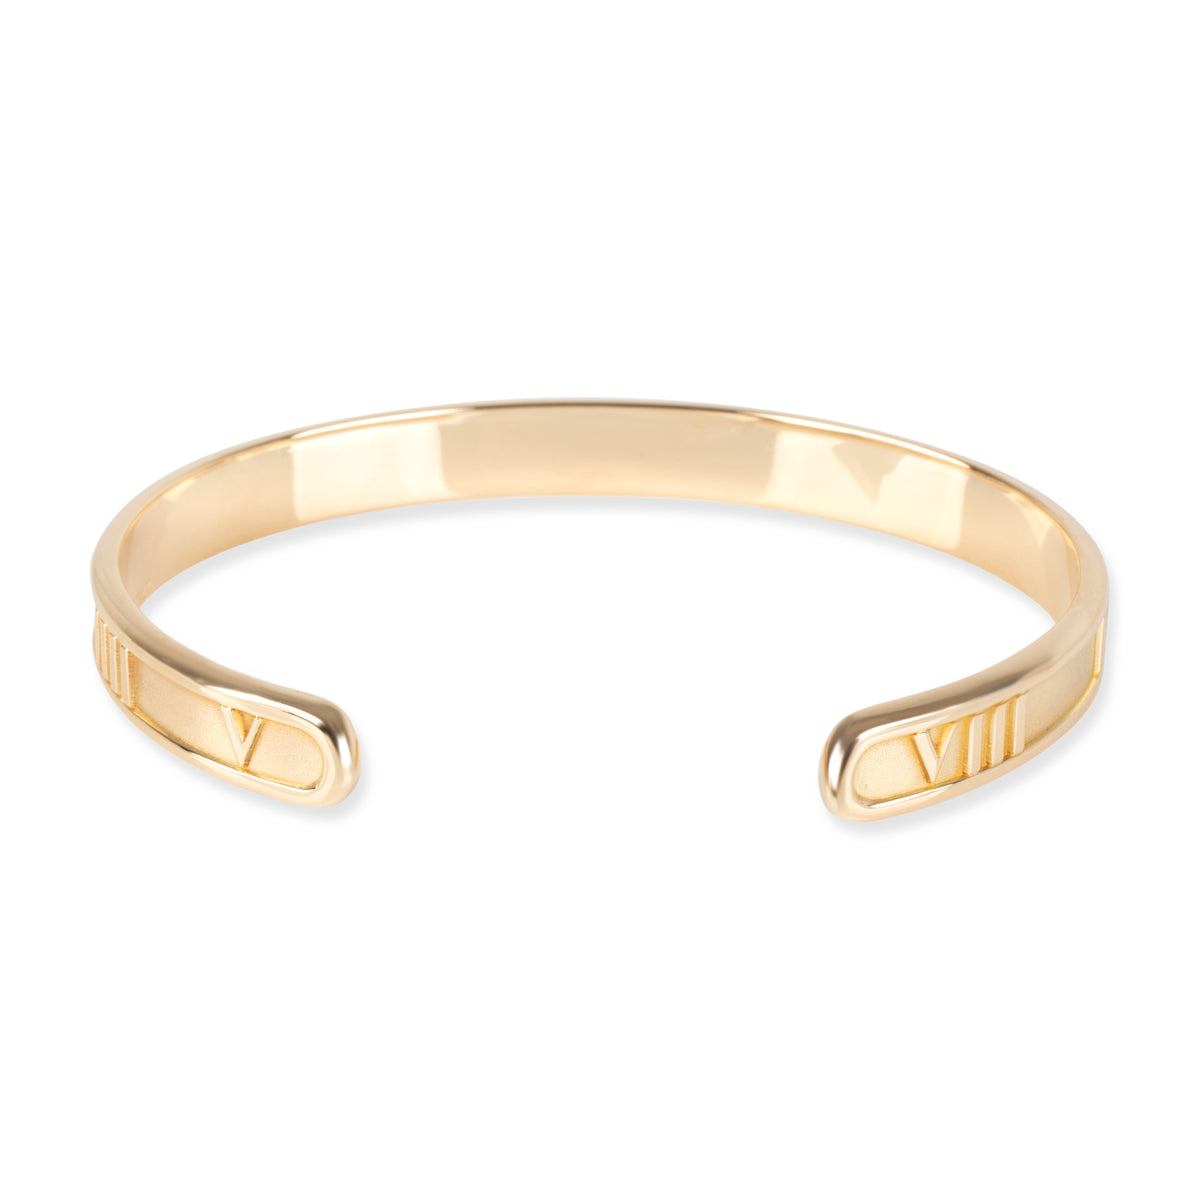 Tiffany & Co. Atlas Collection Cuff in 18K Yellow Gold